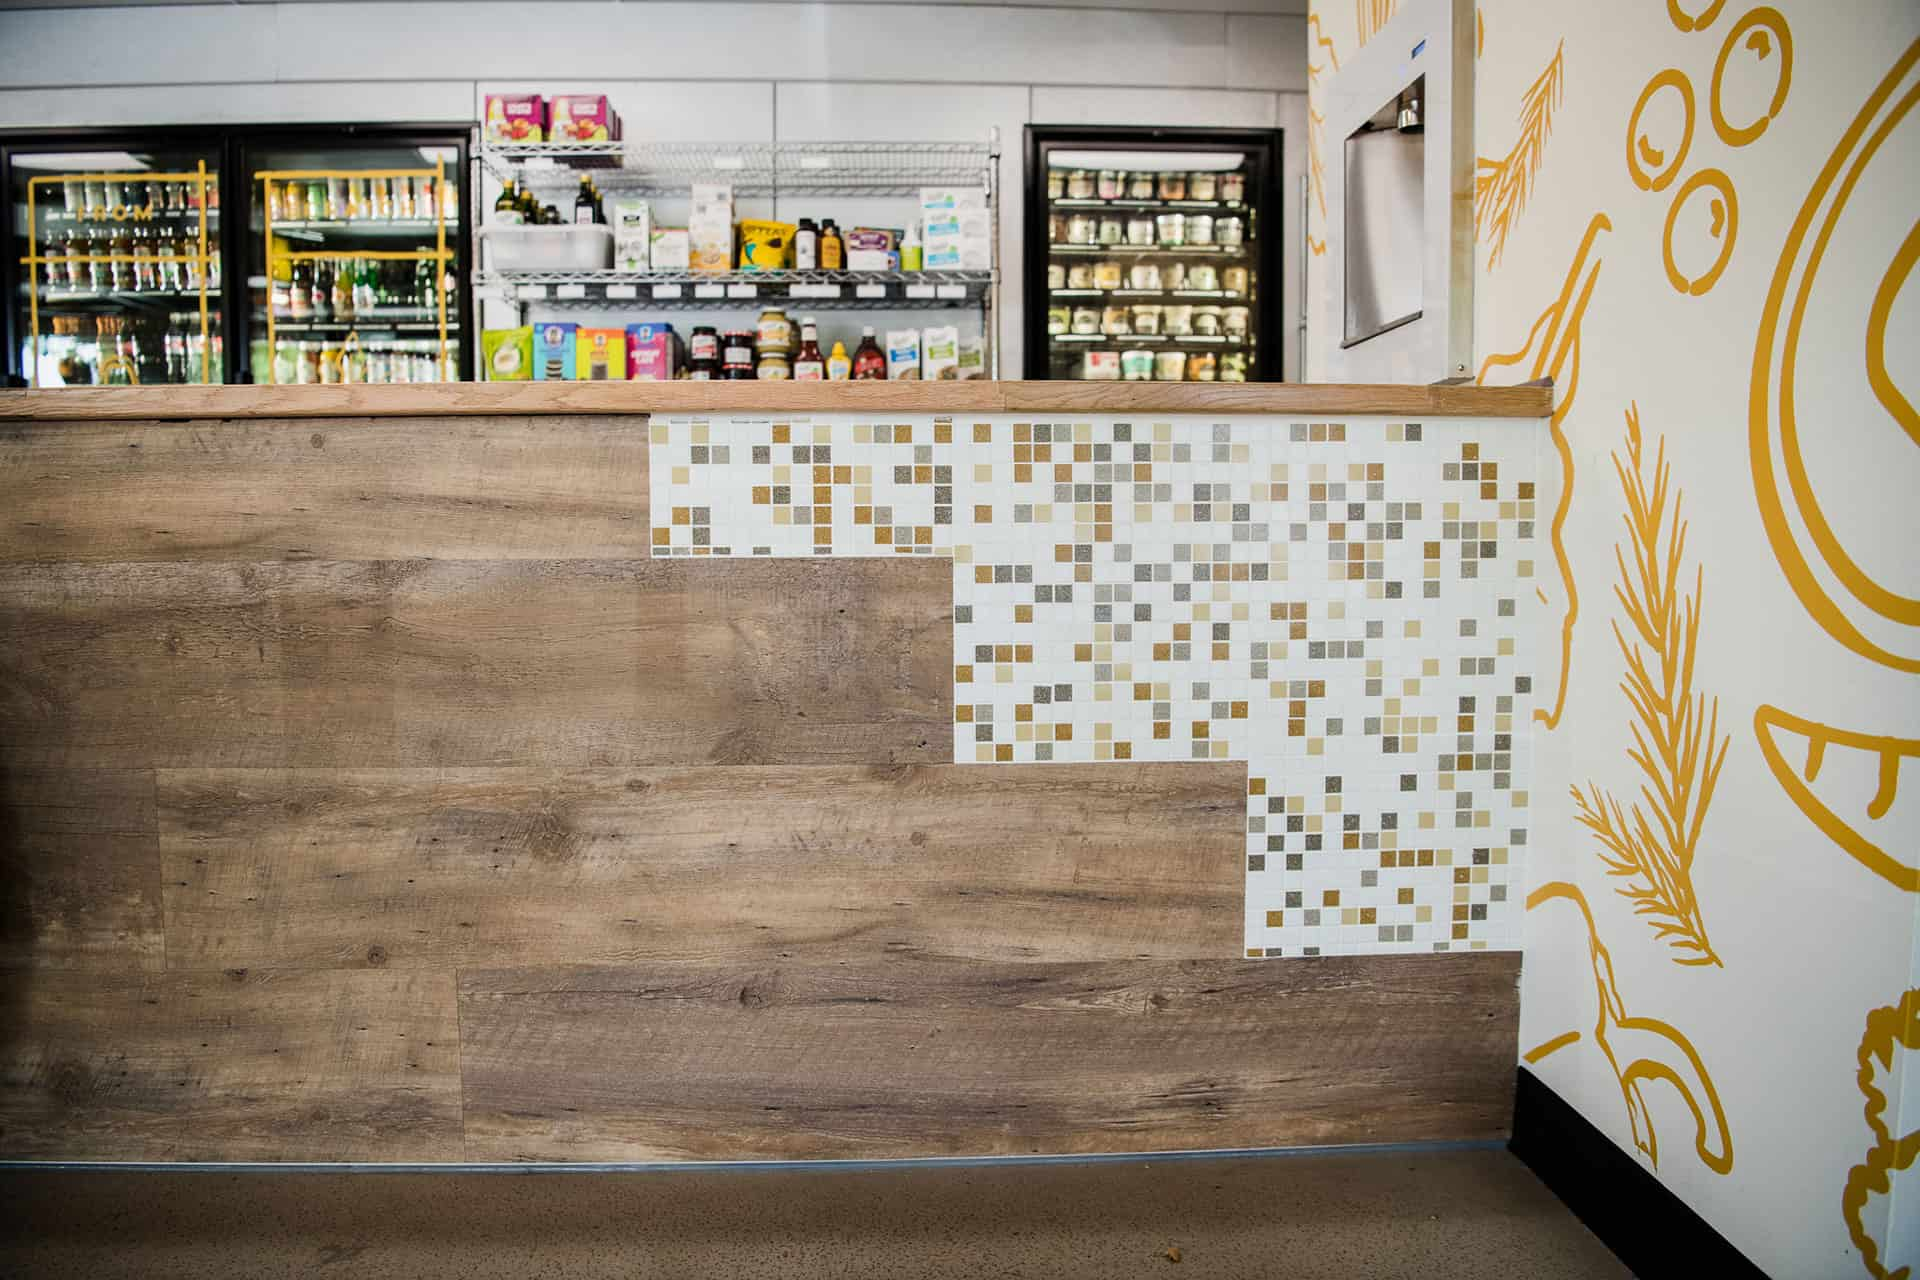 Scratch Kitchen virtual restaurant branding interior design